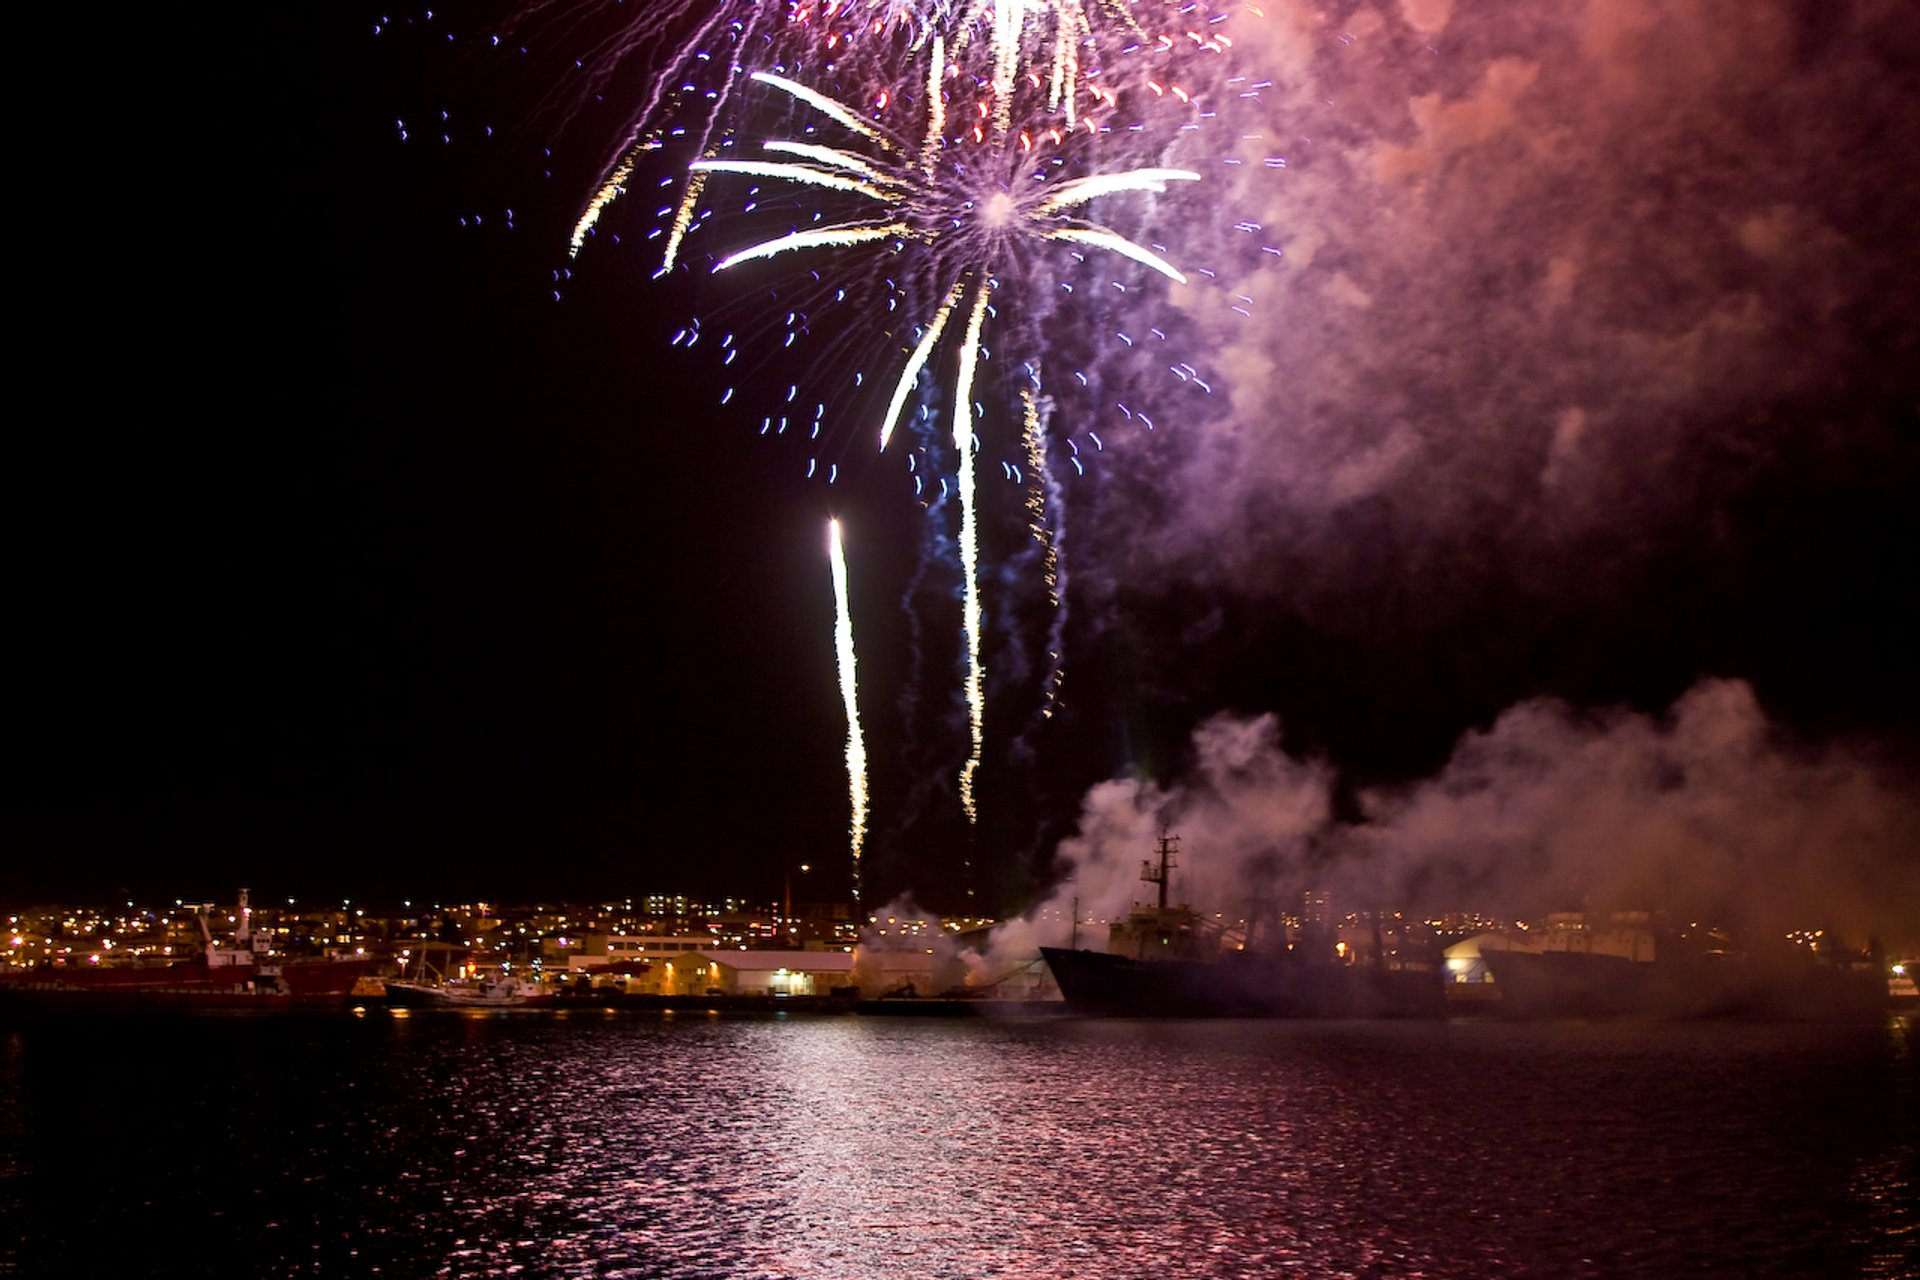 New Year's Eve Fireworks in Reykjavik 2020 - Best Time